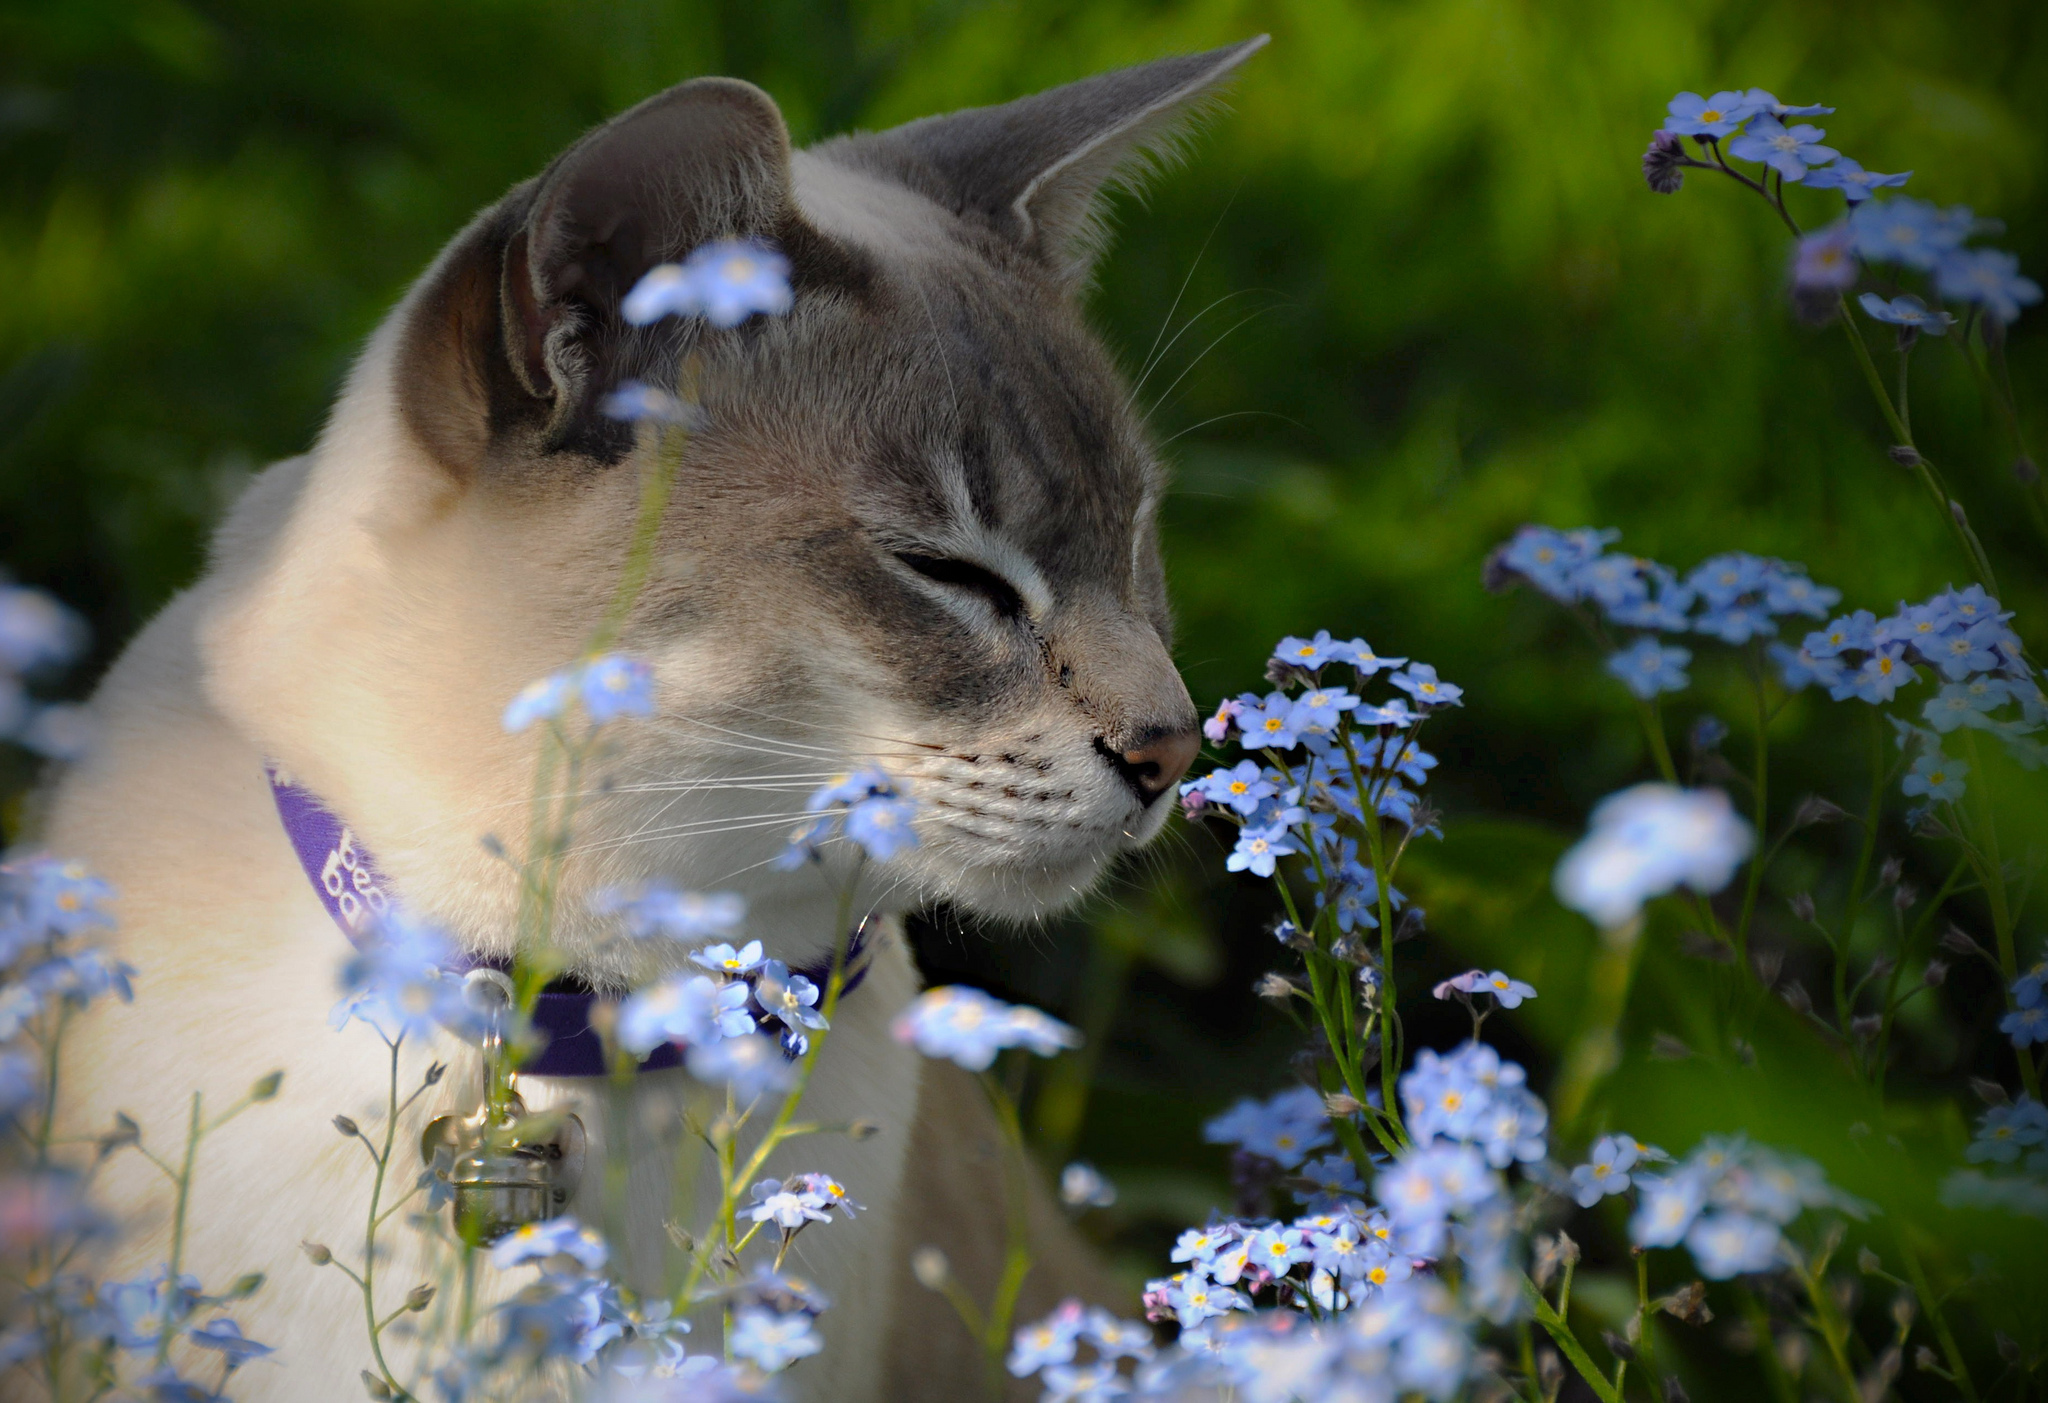 Image: Cat, flowers, field, sniffing, collar